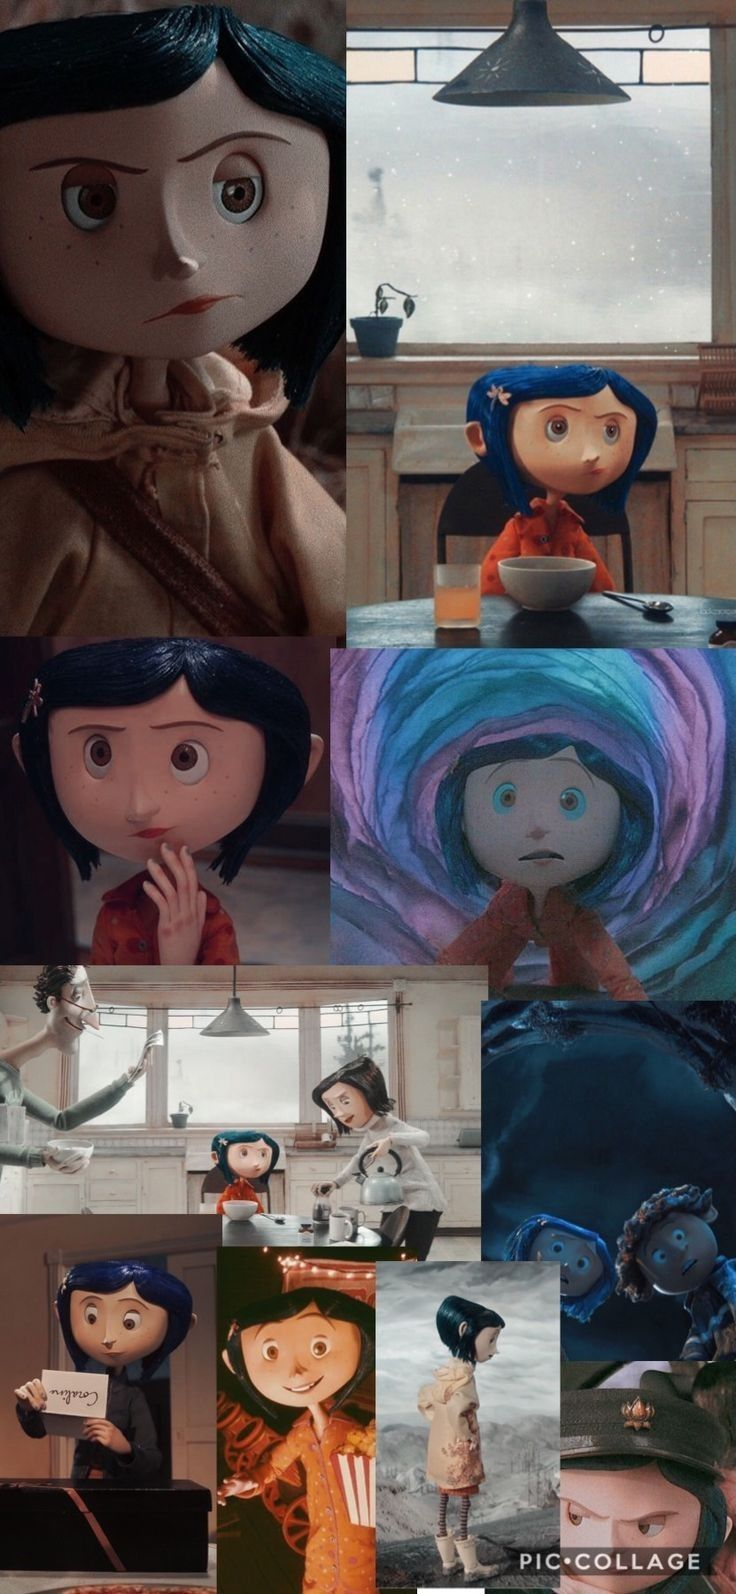 Pin By Byby Pink On Coraline In 2020 Coraline Aesthetic Coraline Art Cute Wallpapers